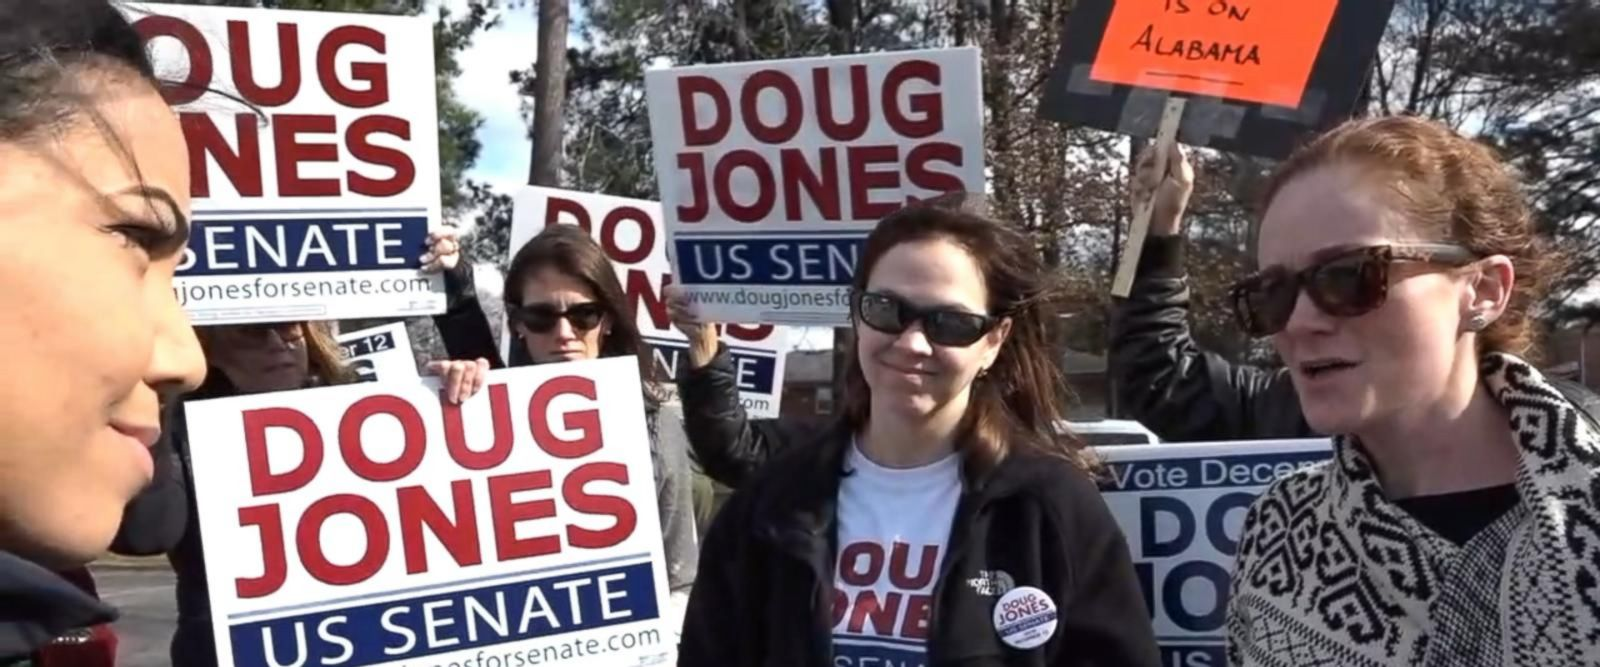 VIDEO: Doug Jones voters look to their candidate to bring change to the state of Alabama